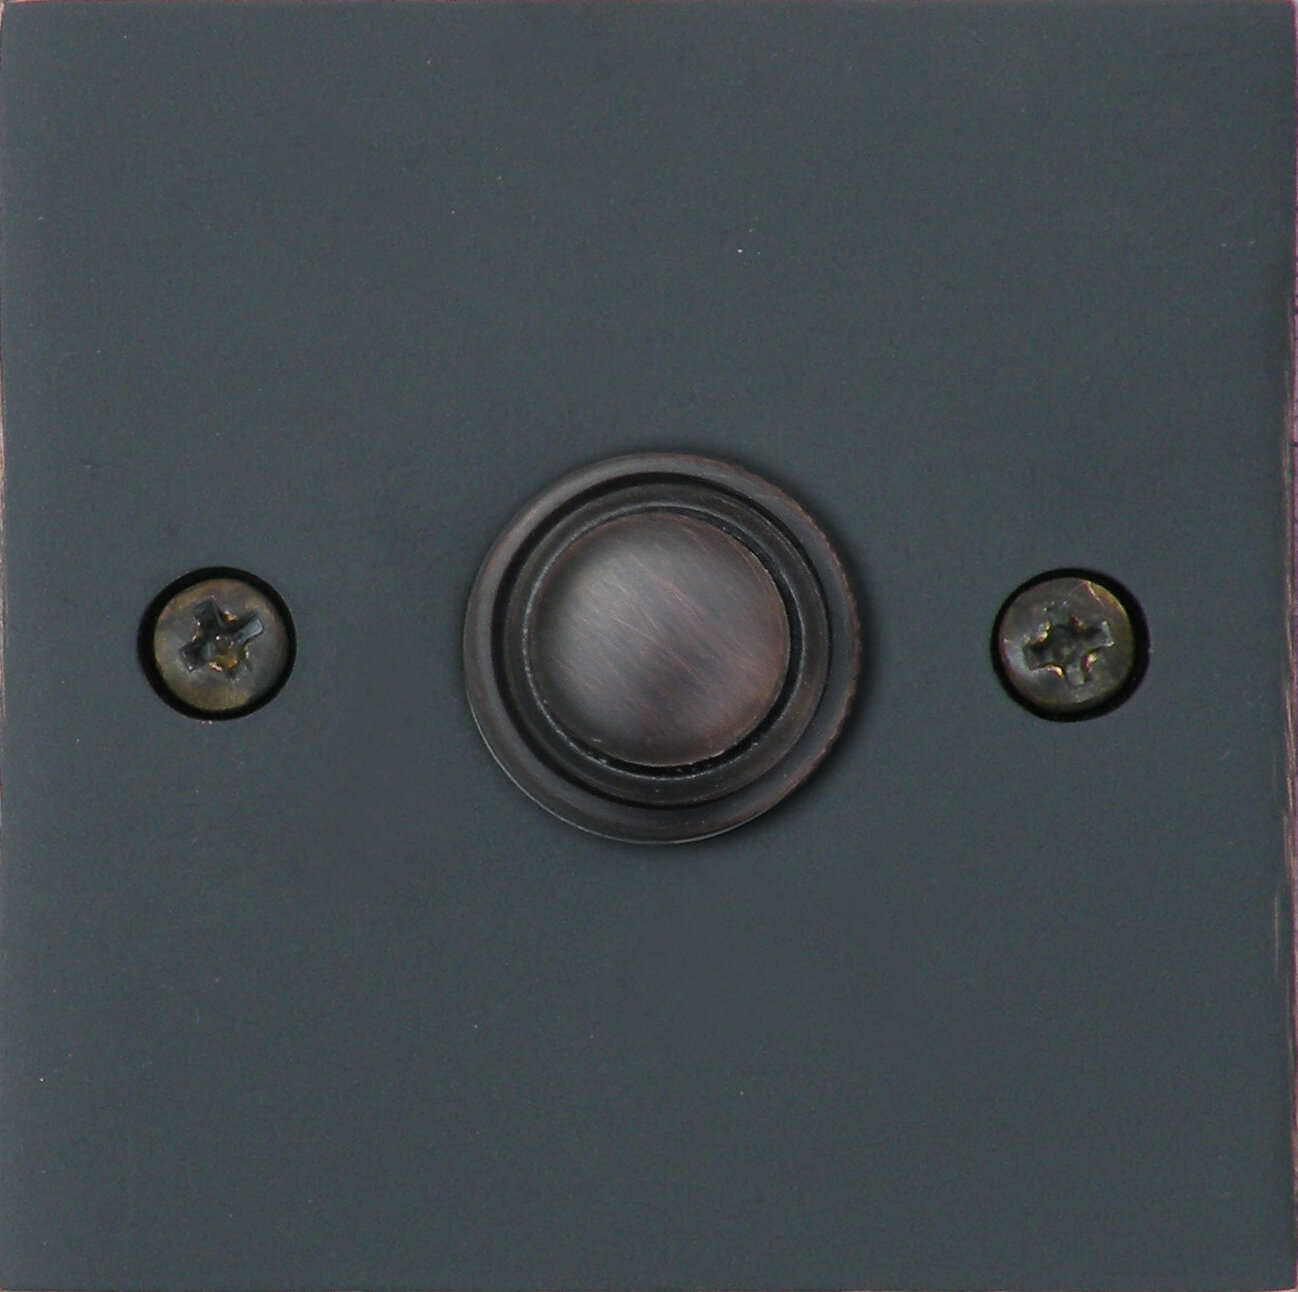 High QUALITY Polished Stainless Steel DOORBELL Switch PREMIUM new Door BELL